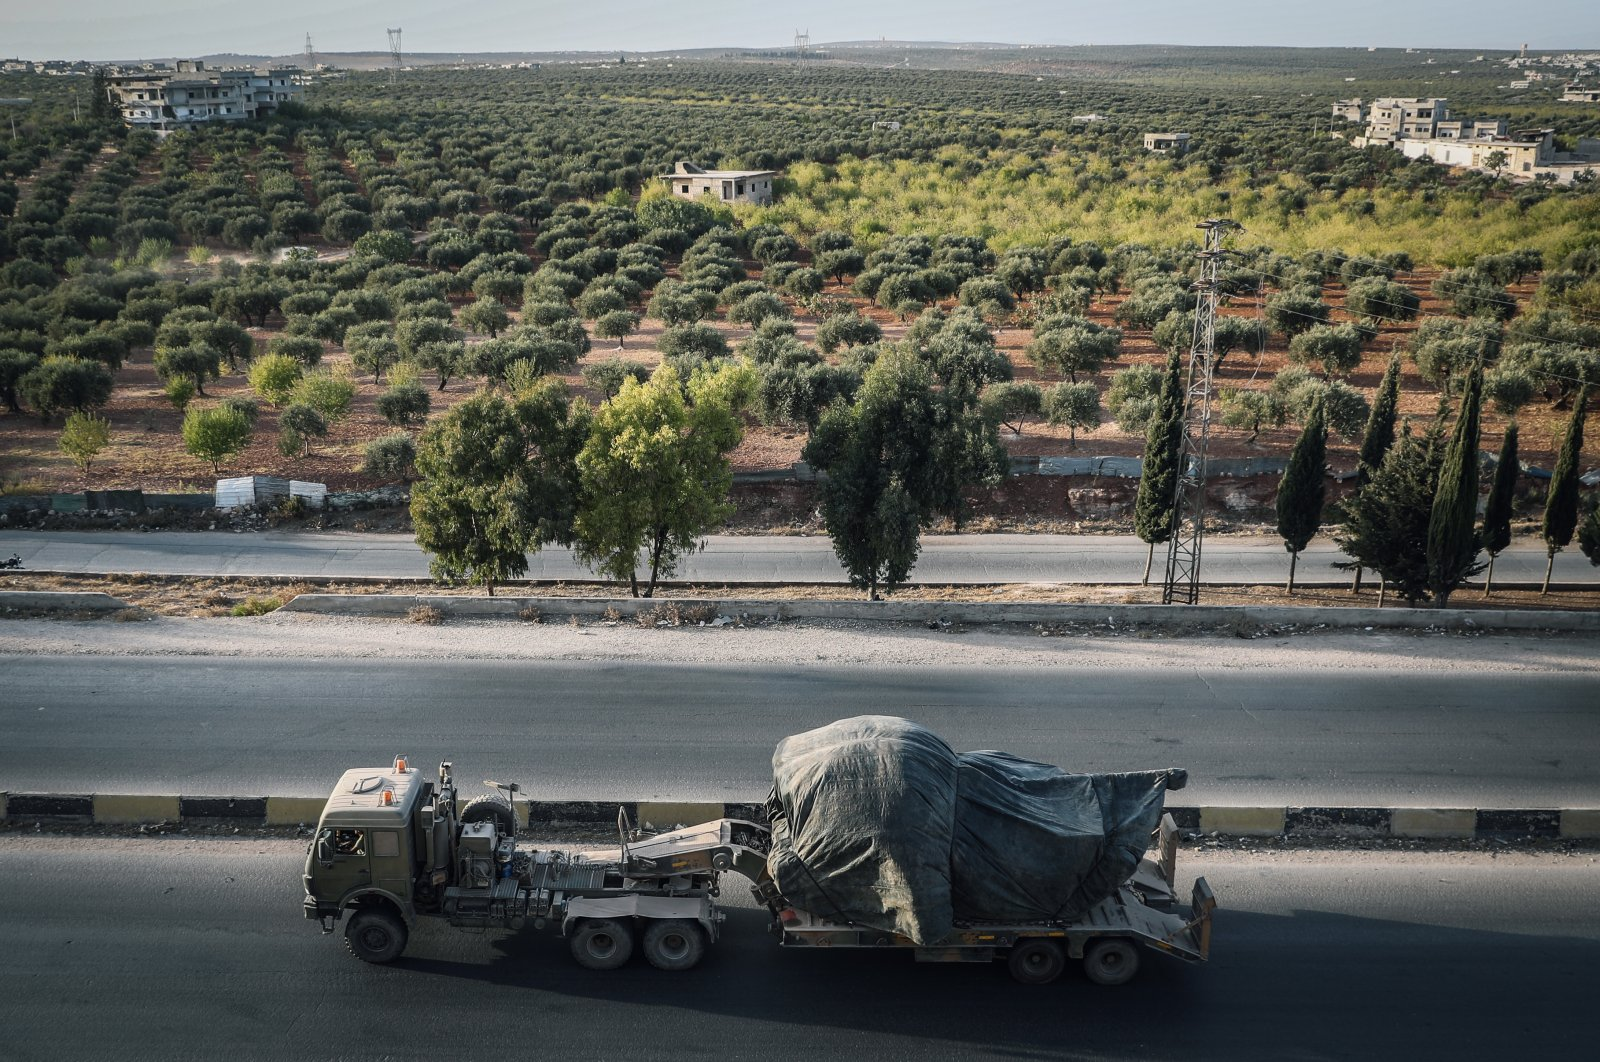 A Turkish military vehicle drives on the M4 Motorway, near the city of Arihah, Syria, Oct. 20, 2020. (Photo by Getty Images)